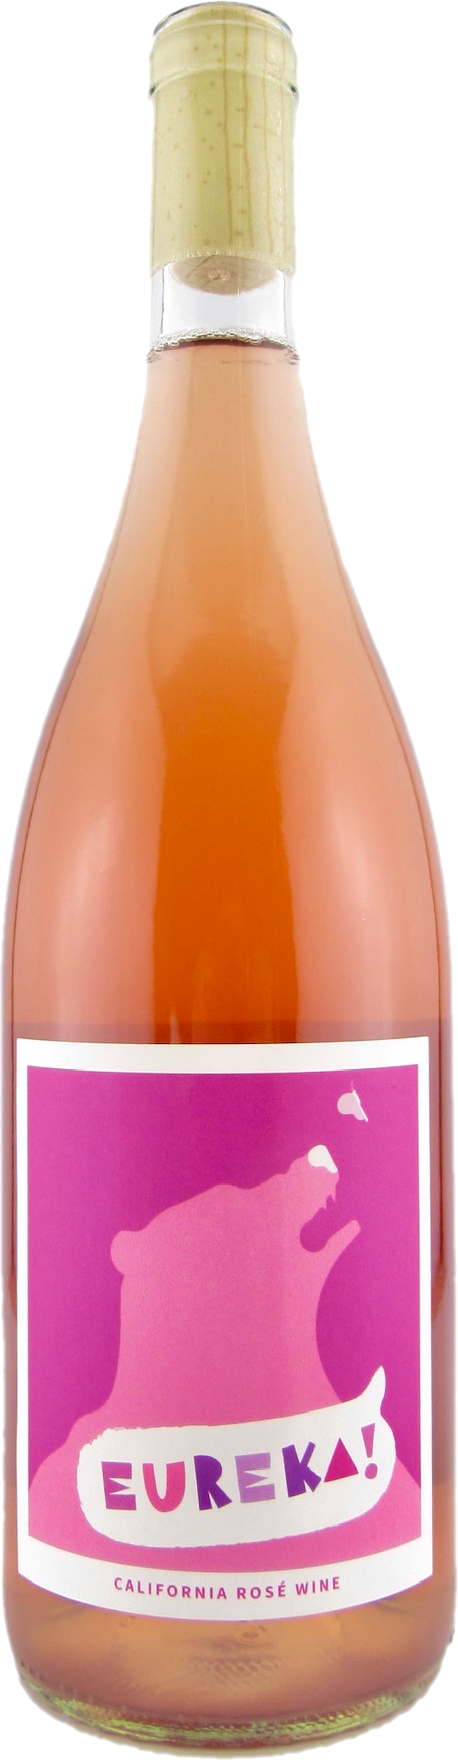 Eureka! Wine Co. - Rosé